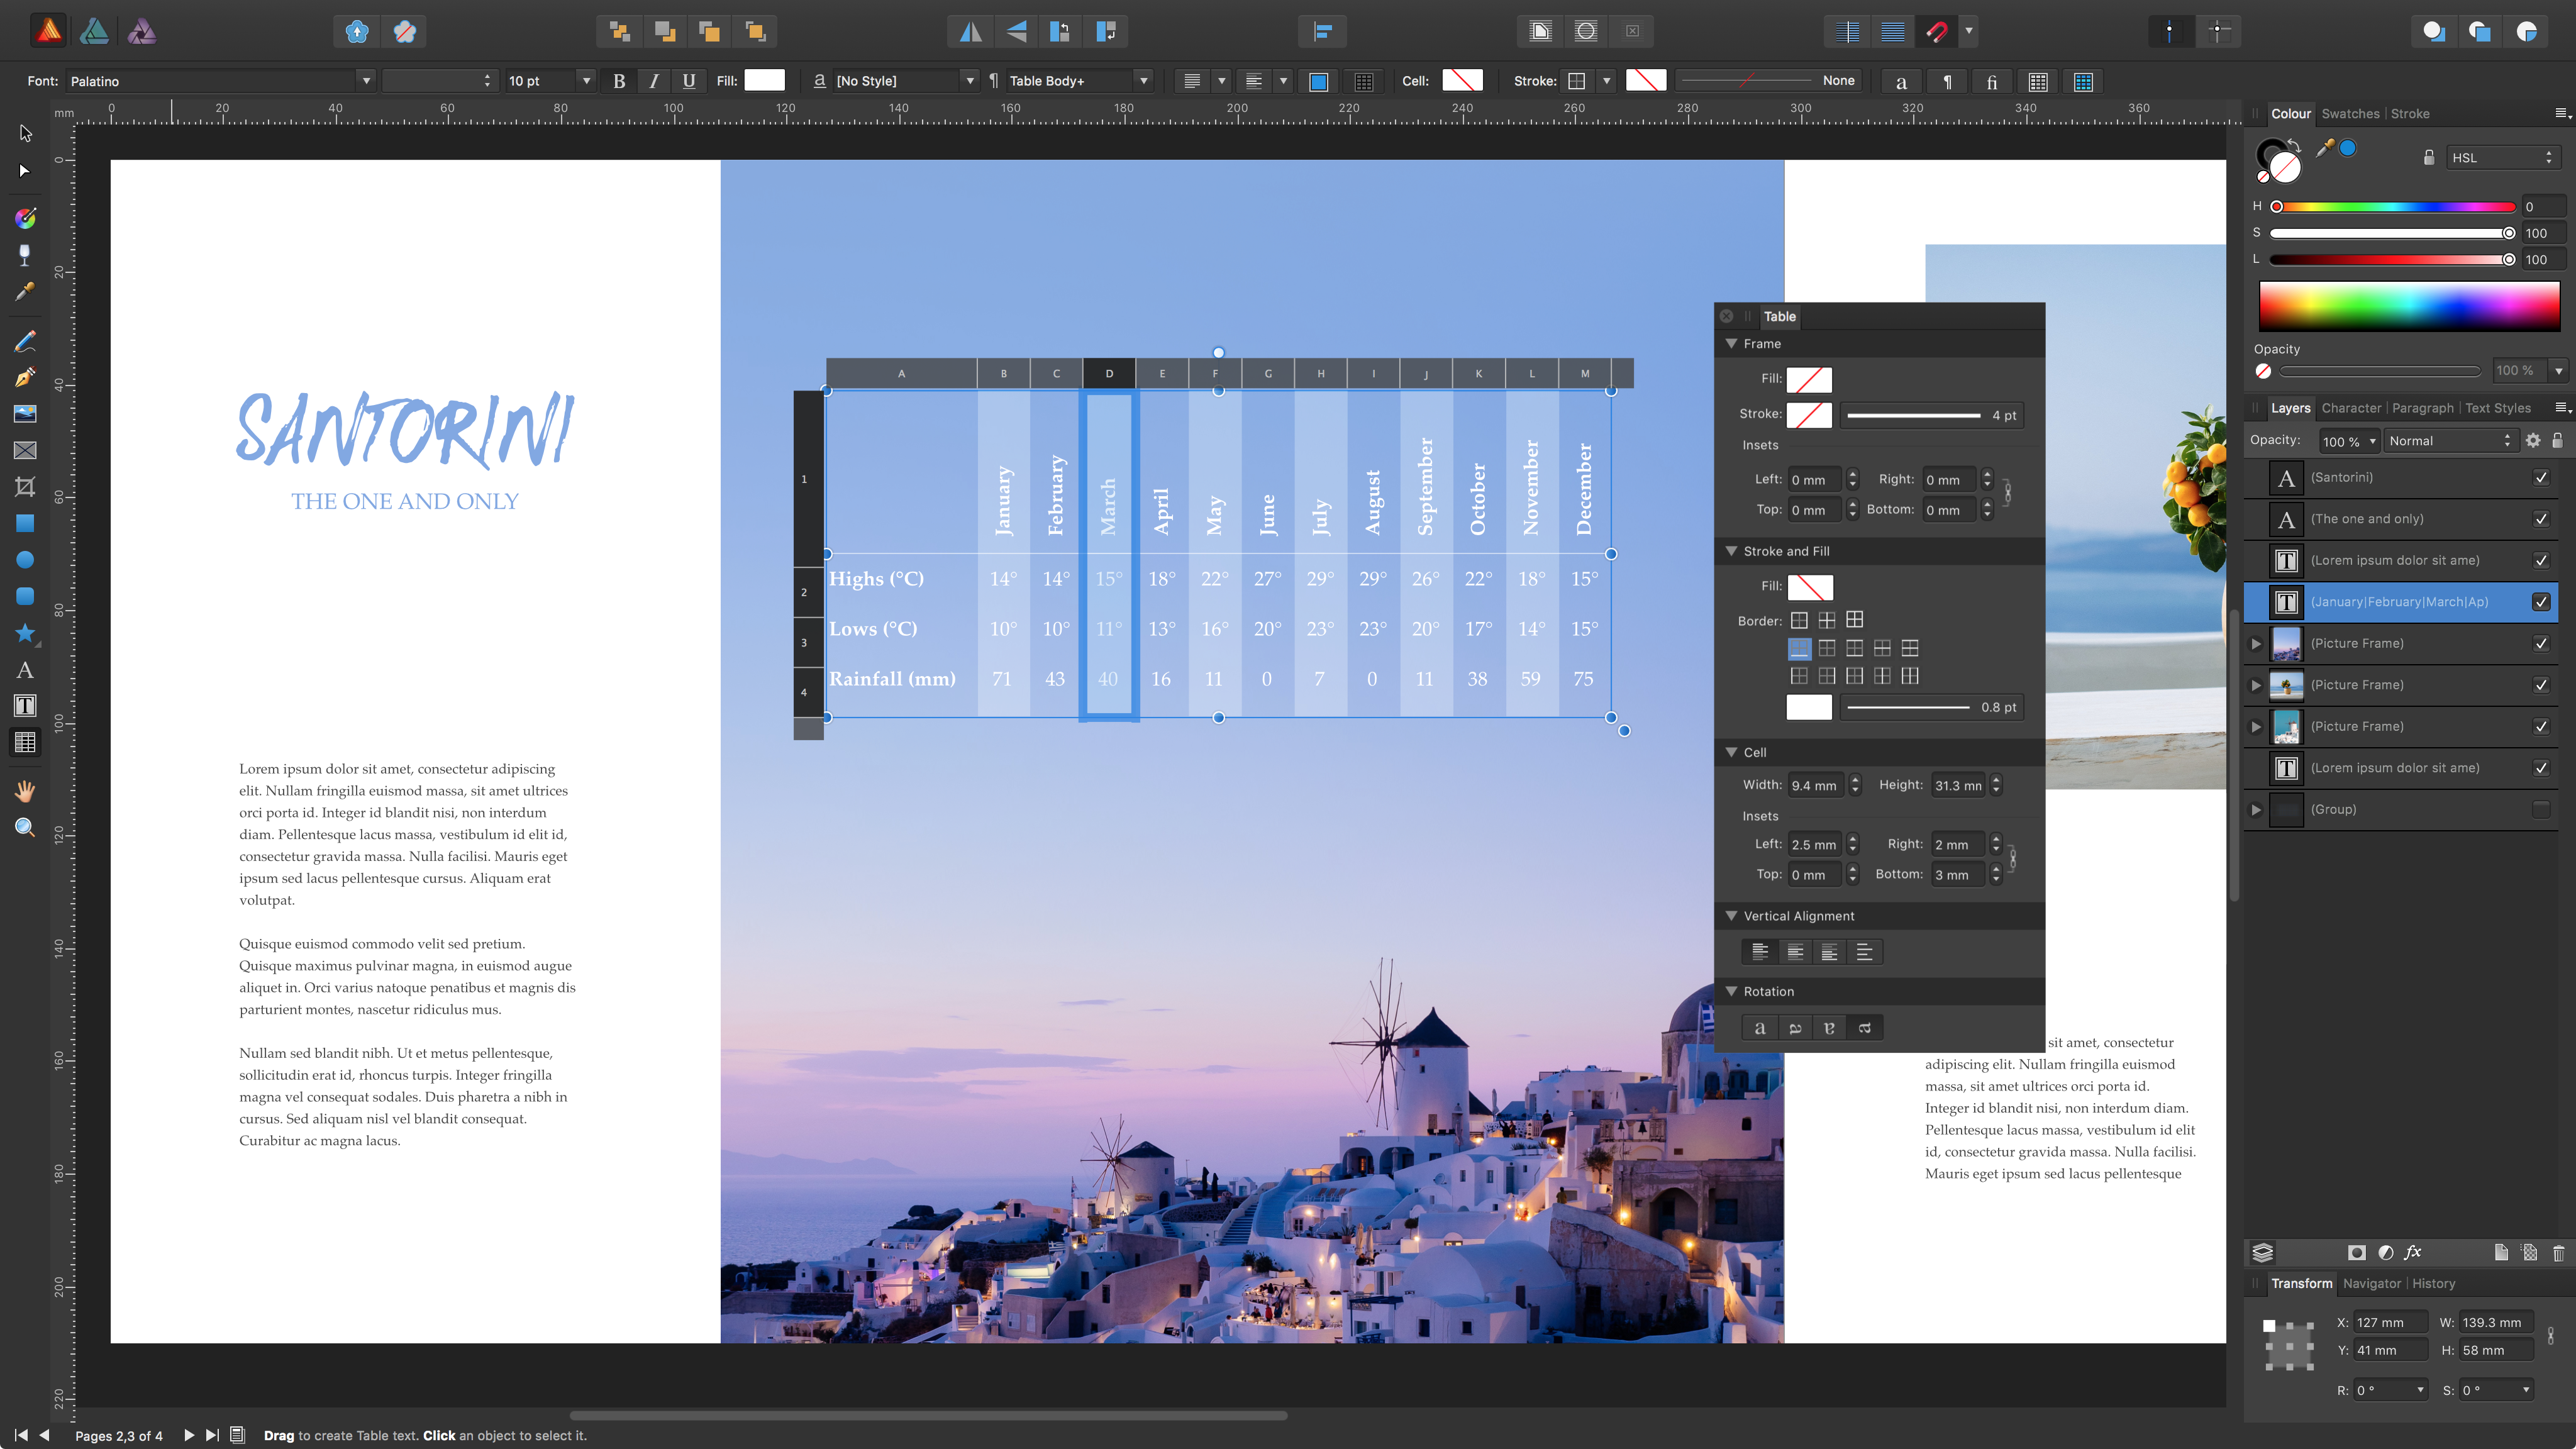 Affinity Publisher finally launches in free beta